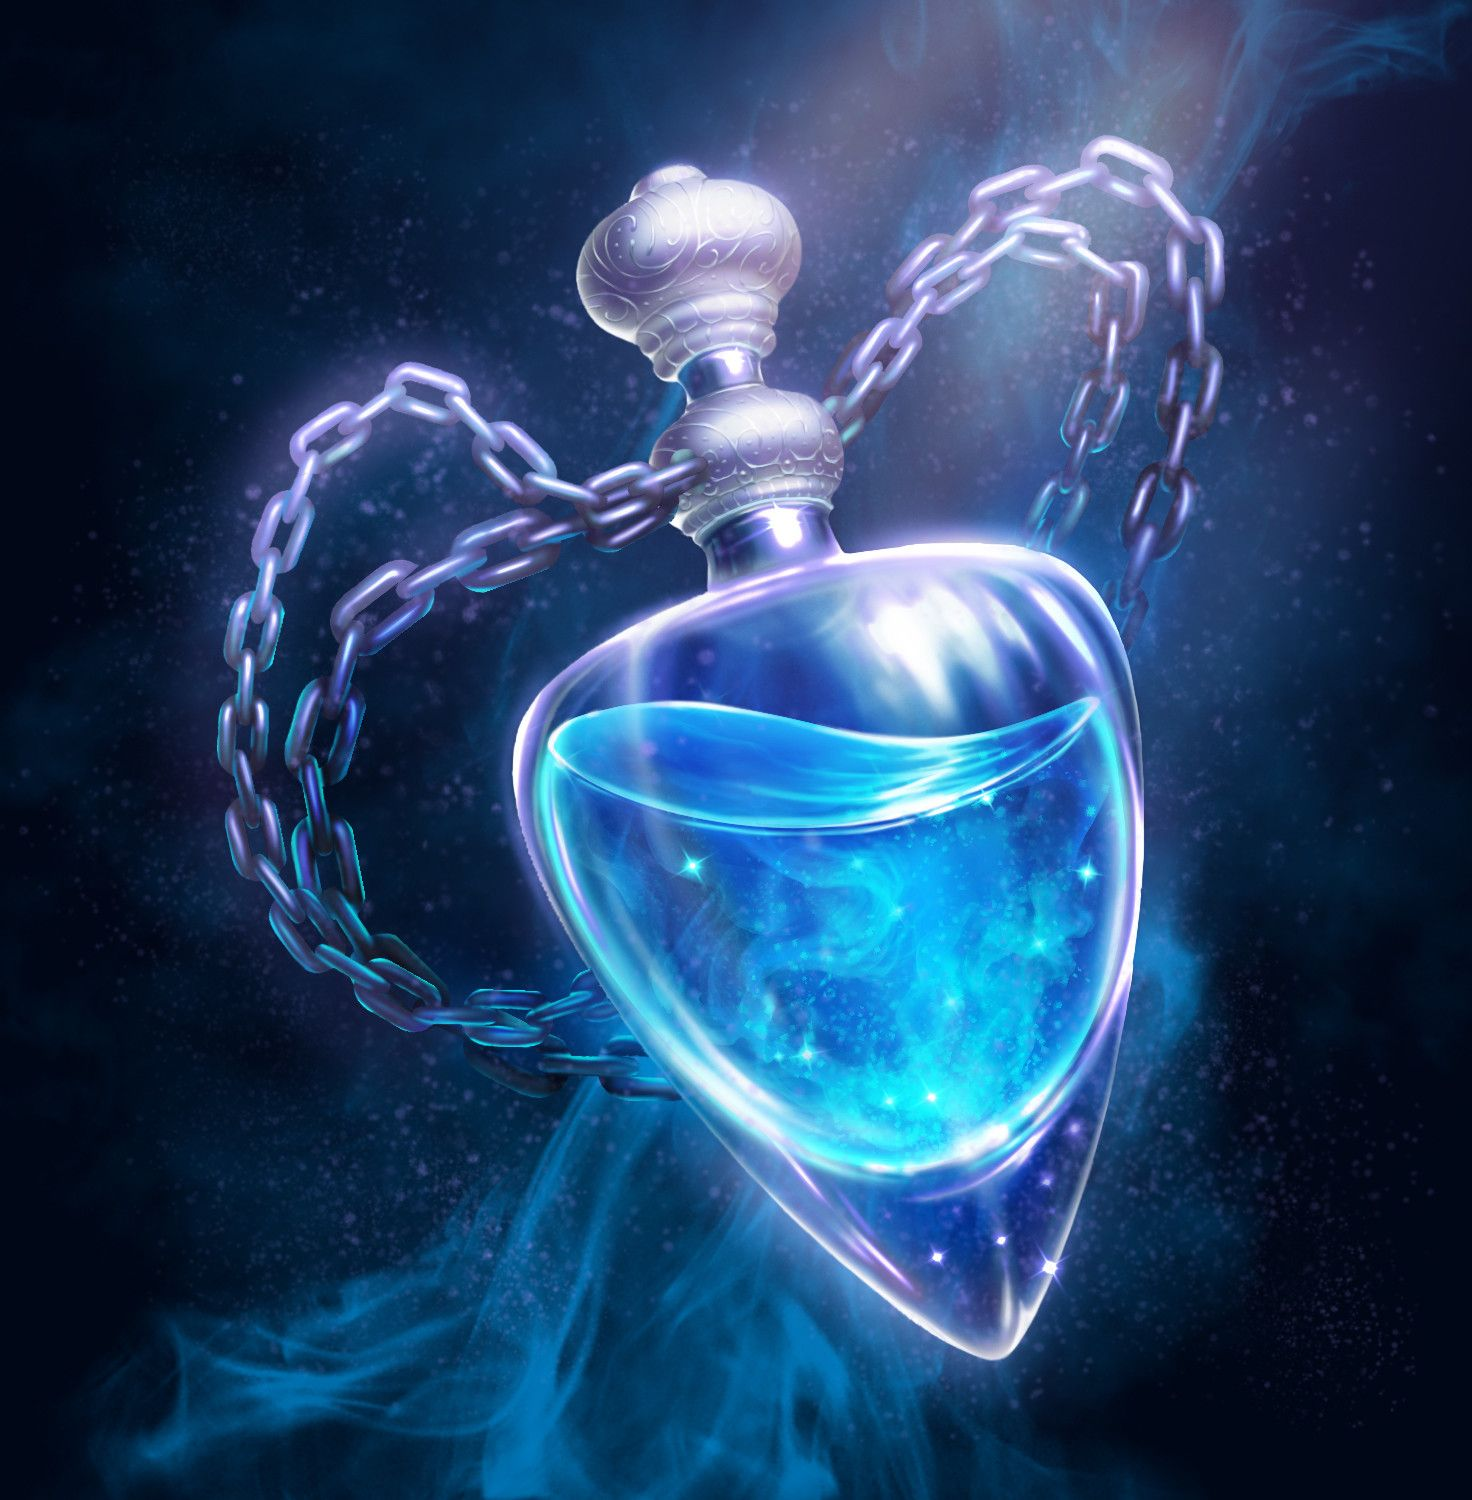 80 Magic Potion Ideas In 2020 Potions Magic Bottles Fantasy Props